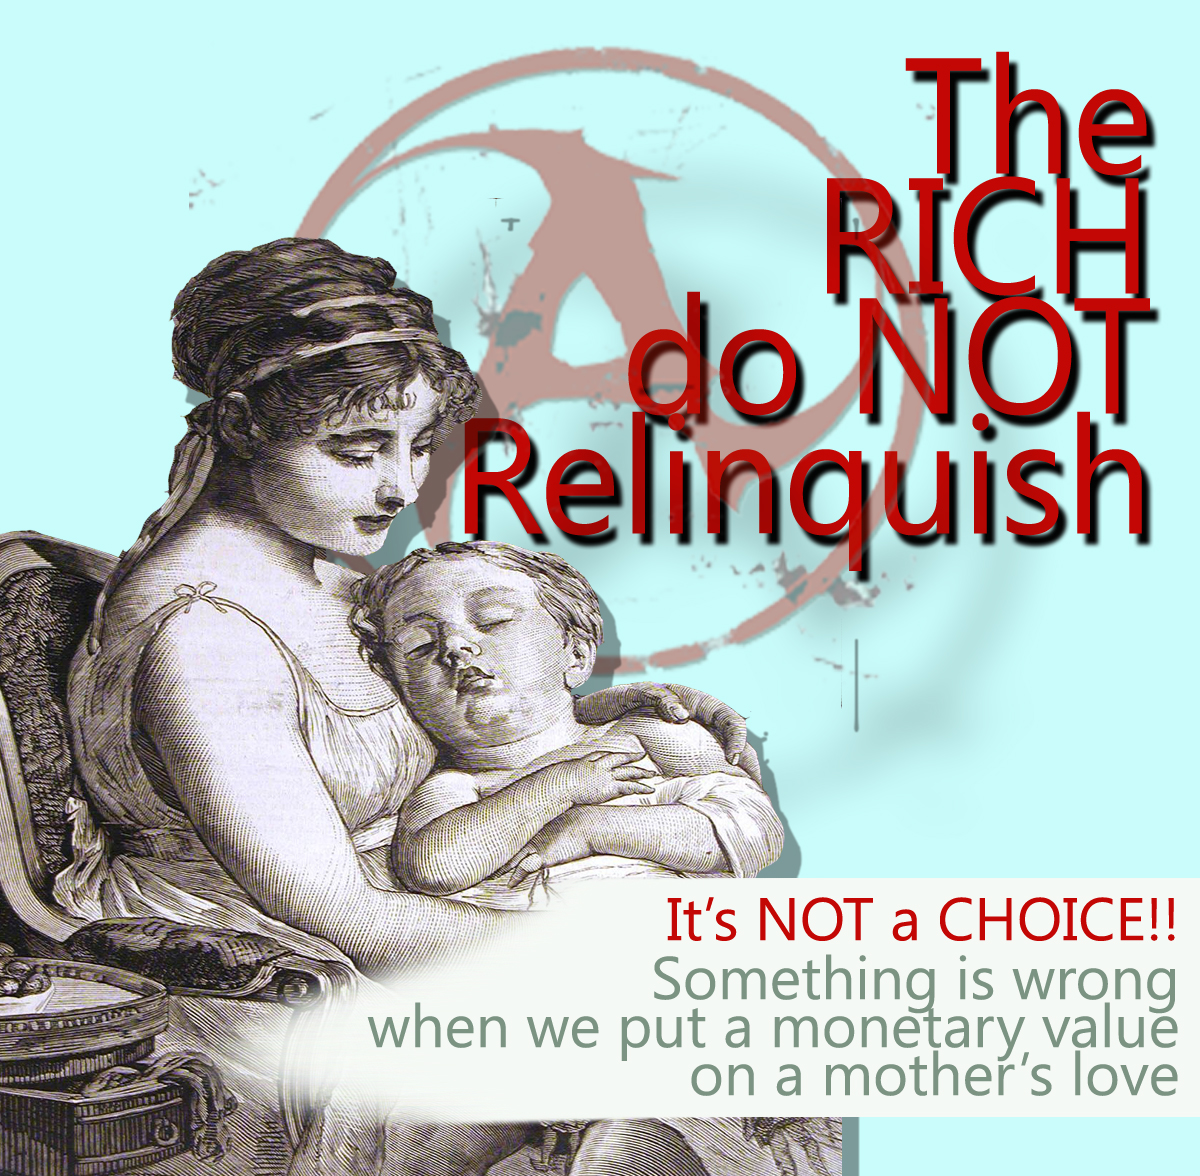 The rich do not relinquish their children to adoption